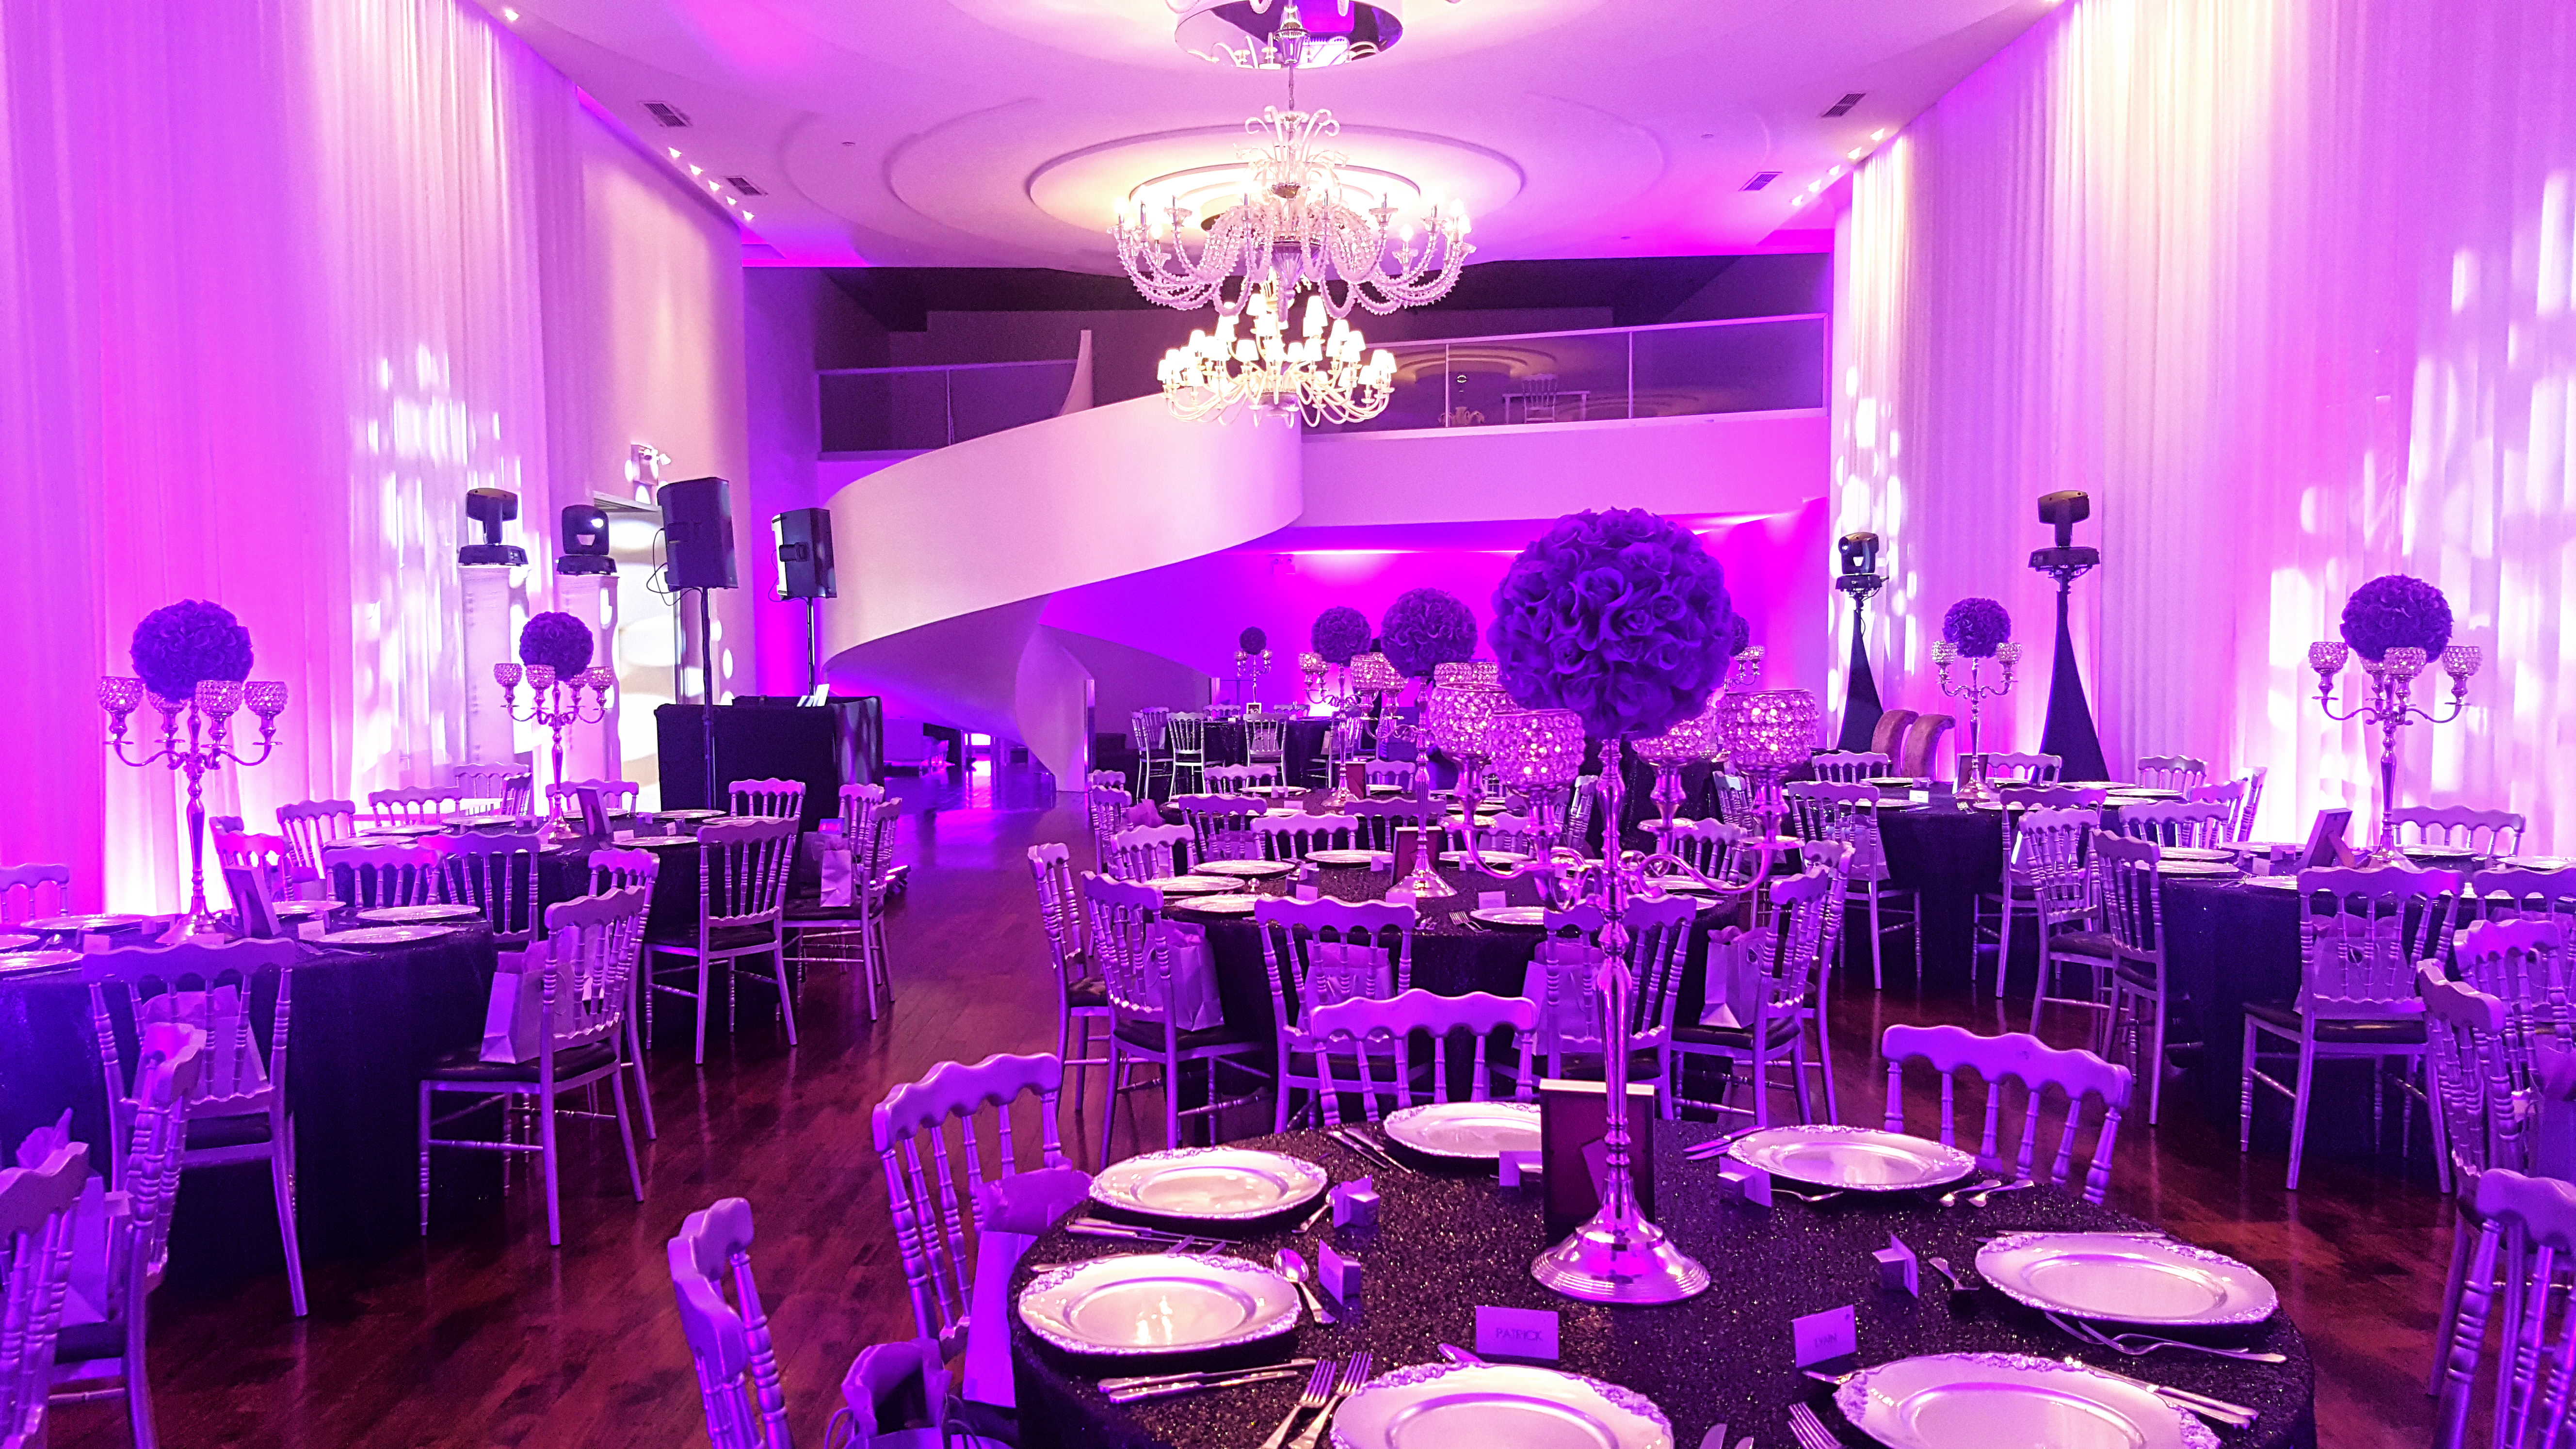 Planificatrice De Mariage Montreal Glam Location Decor